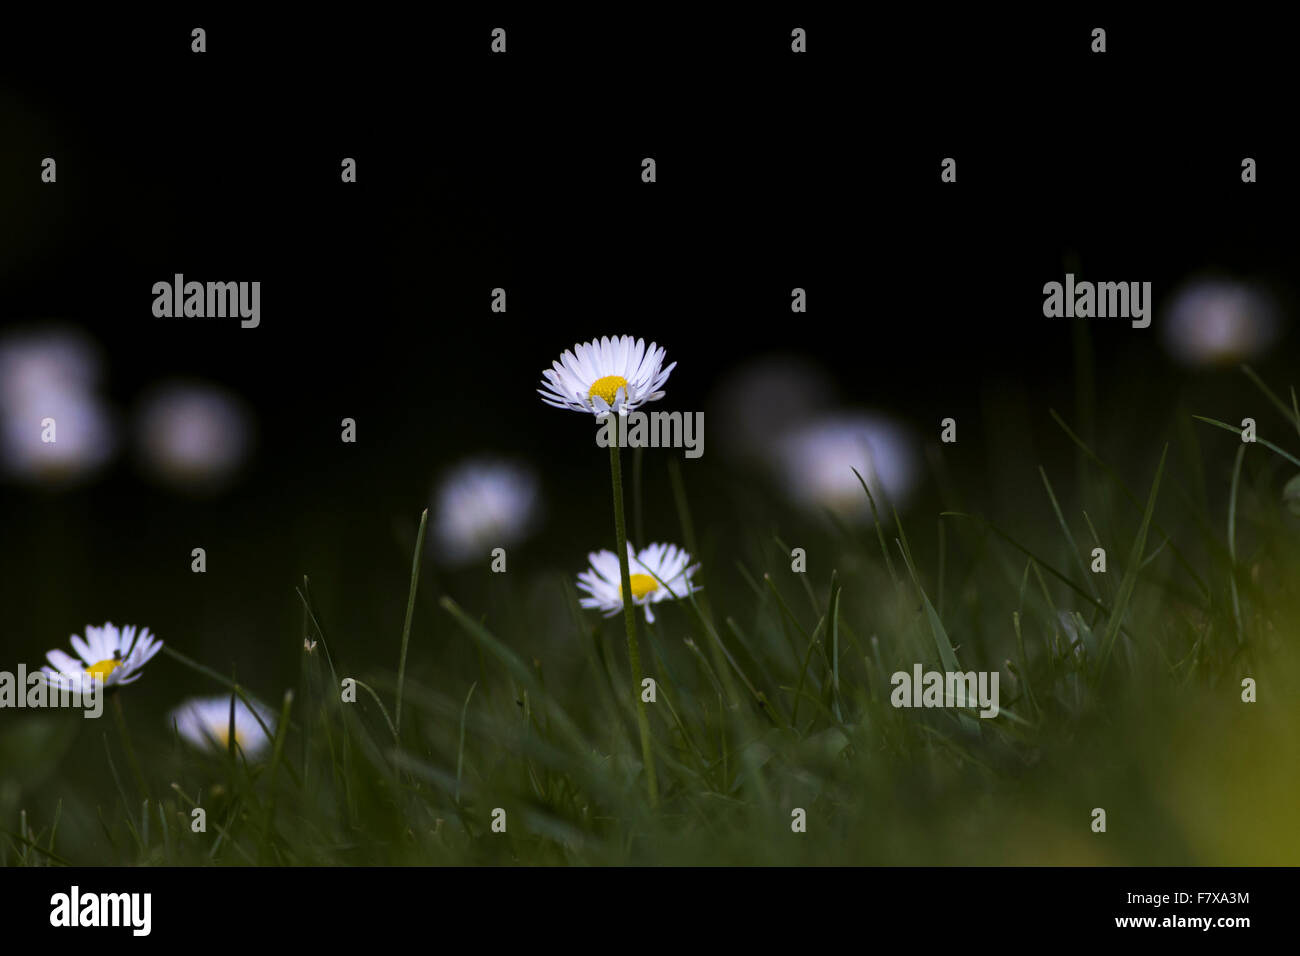 Lawn daisy, Bellis perennis, growing on a lawn in south of Sweden - Stock Image